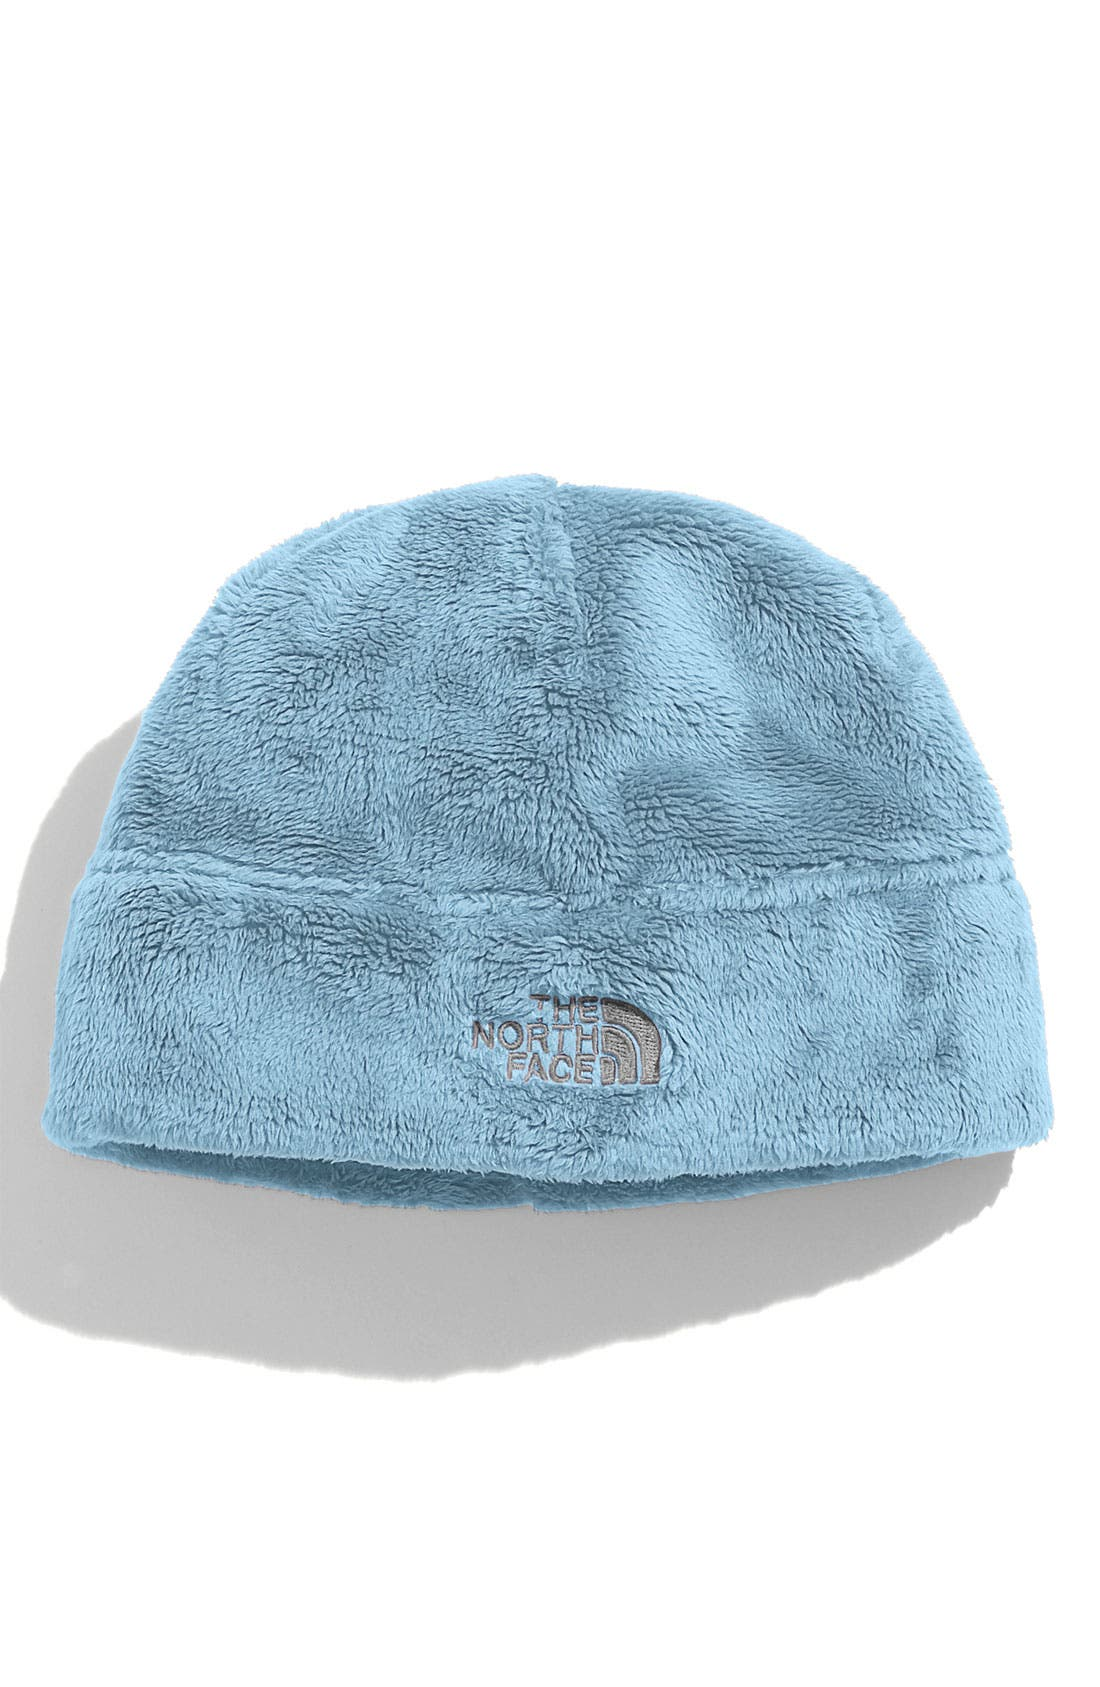 Alternate Image 1 Selected - The North Face 'Denali' Beanie (Girls)